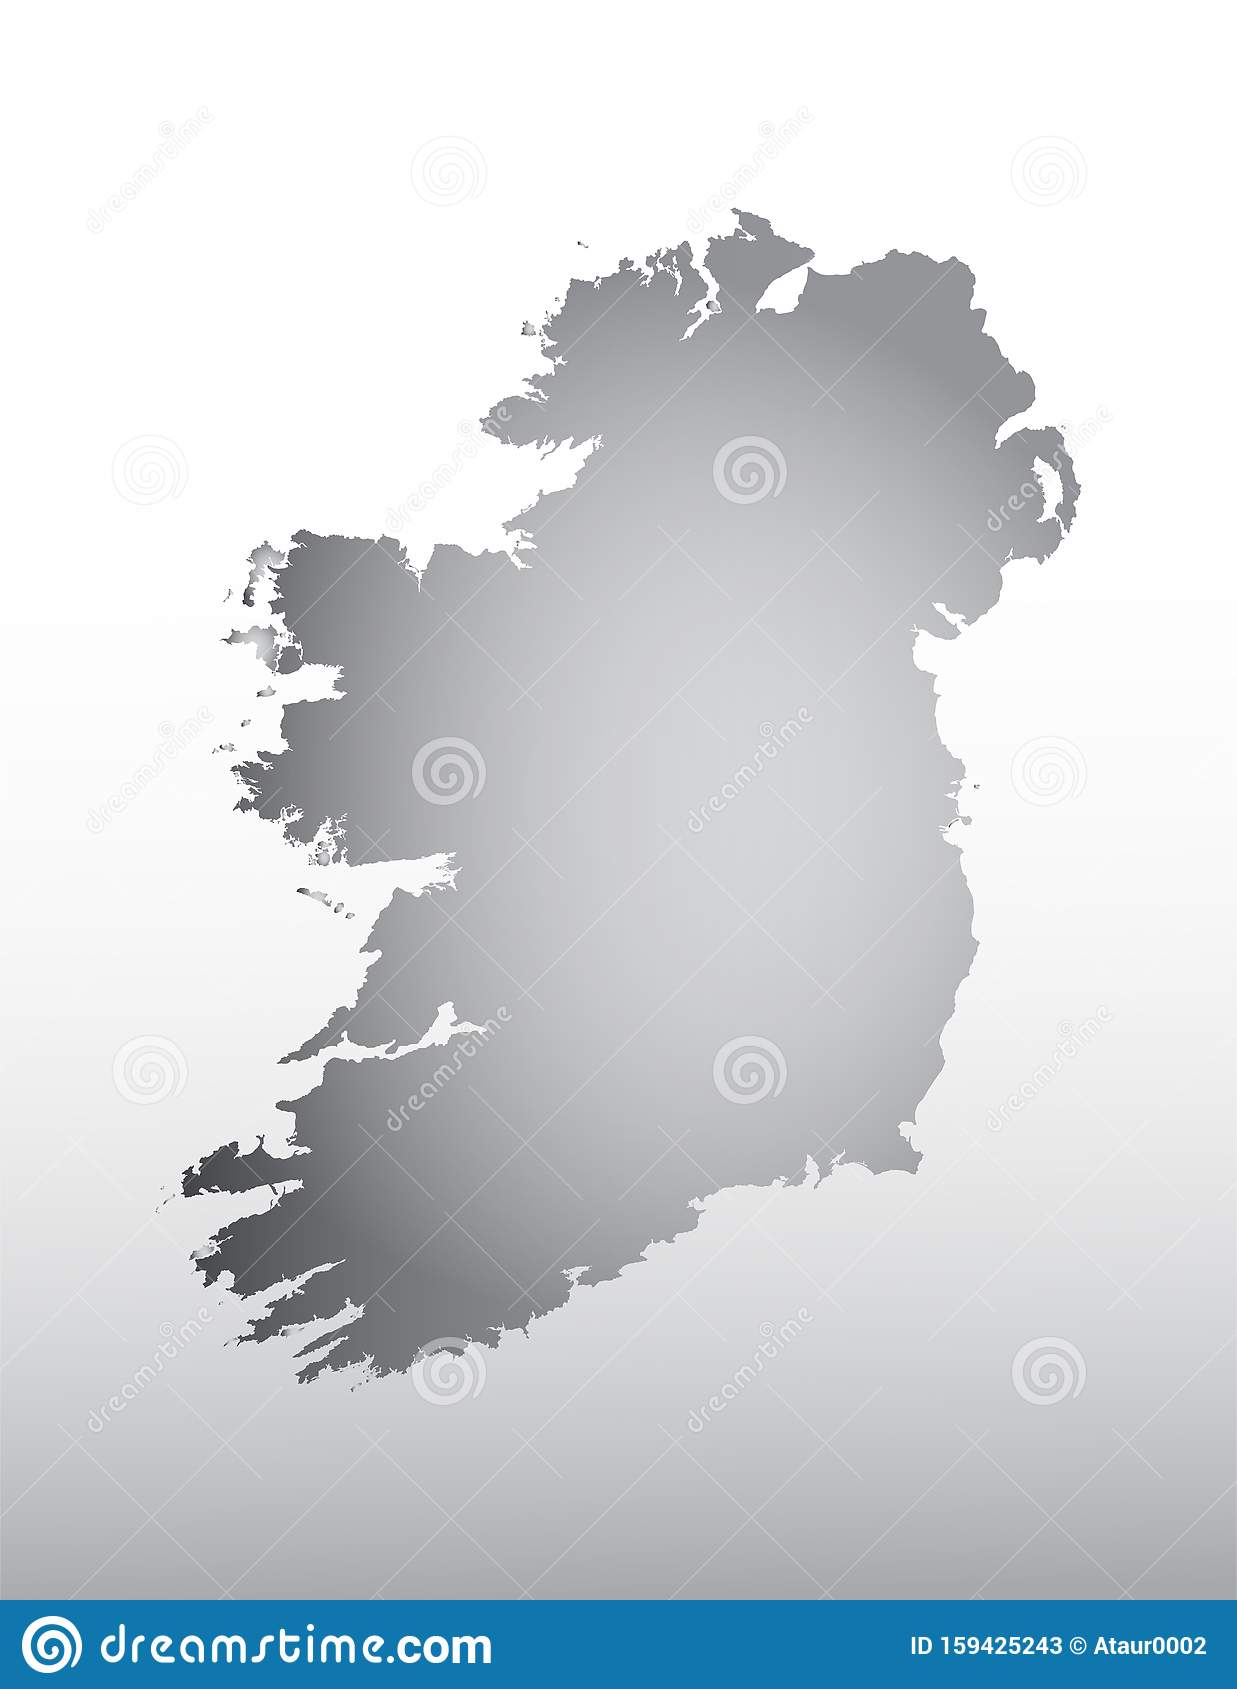 Dark And Light Map : light, Color, Ireland, Light, Effect, Vector, Background, Stock, Illustration, Ocean,, Dark:, 159425243